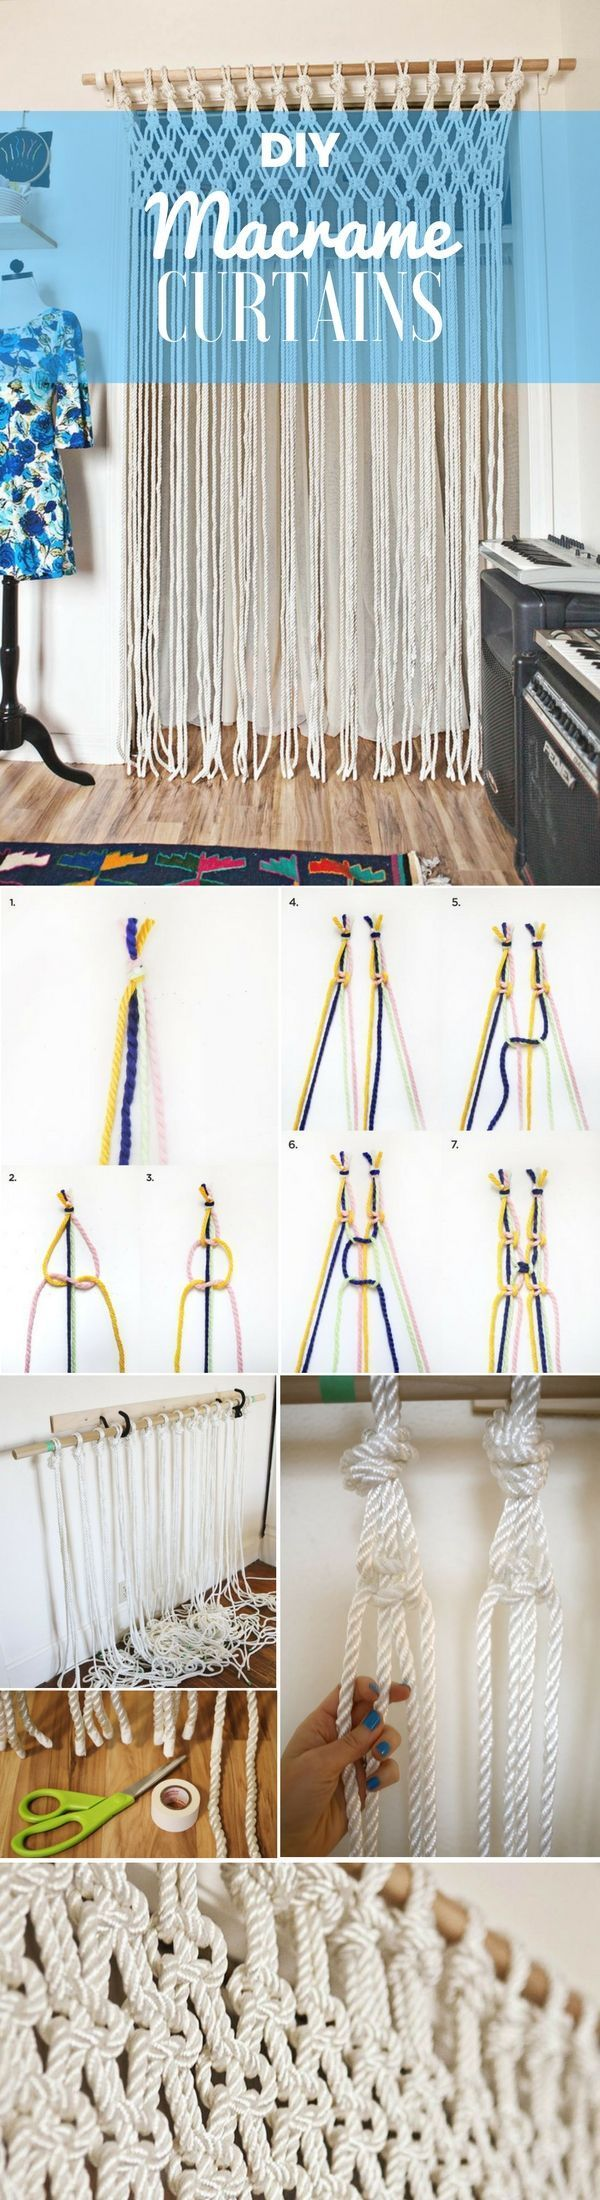 cool Check out how to easily make your own DIY Macrame Curtains Industry Standard Des... by http://www.danazhome-decorations.xyz/home-decor-accessories/check-out-how-to-easily-make-your-own-diy-macrame-curtains-industry-standard-des/ ~ Great pin! For Oahu architectural design visit http://ownerbuiltdesign.com